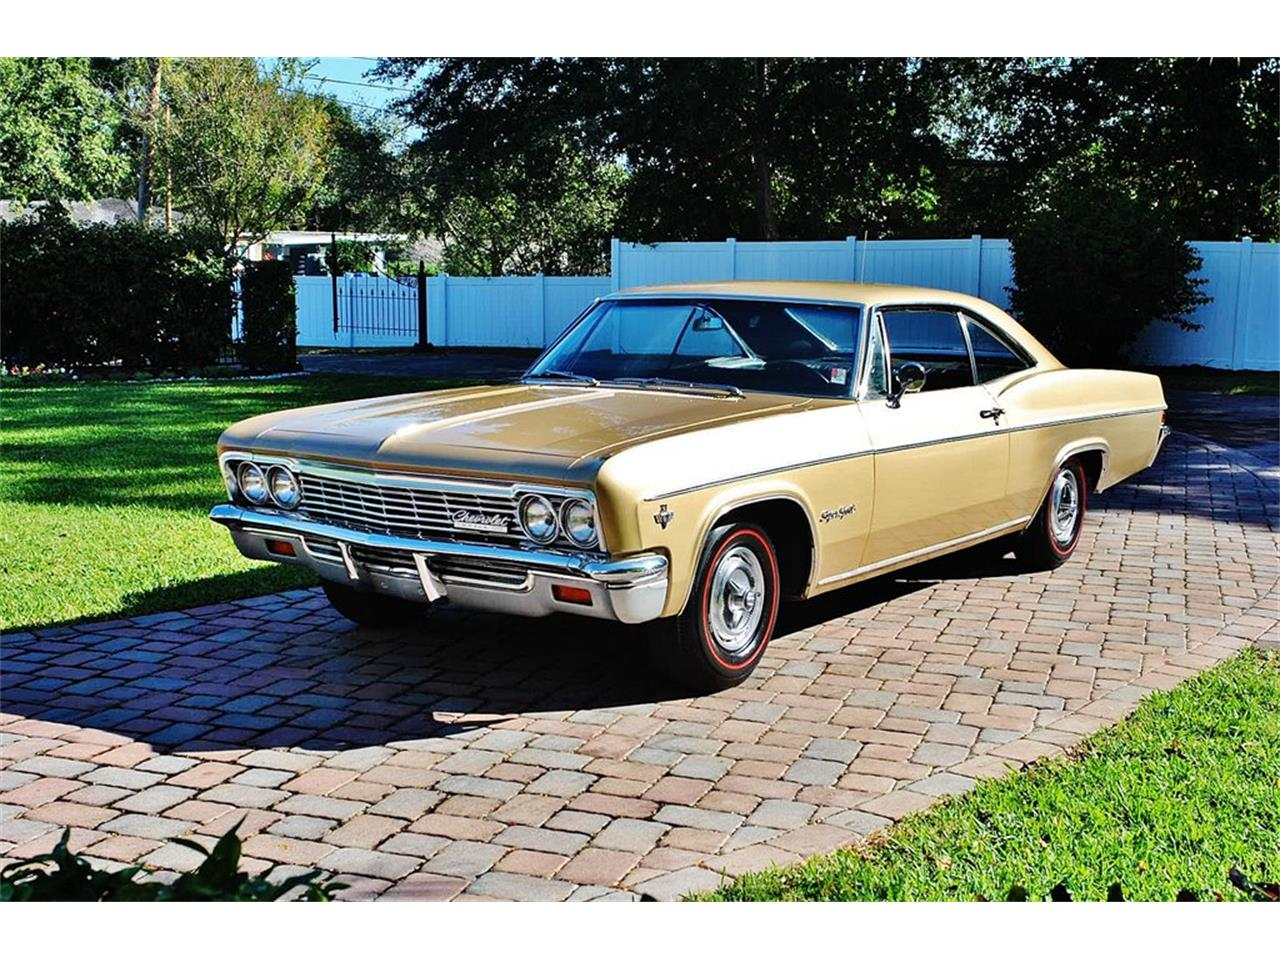 1966 Chevrolet Impala SS for sale in Lakeland, FL – photo 19